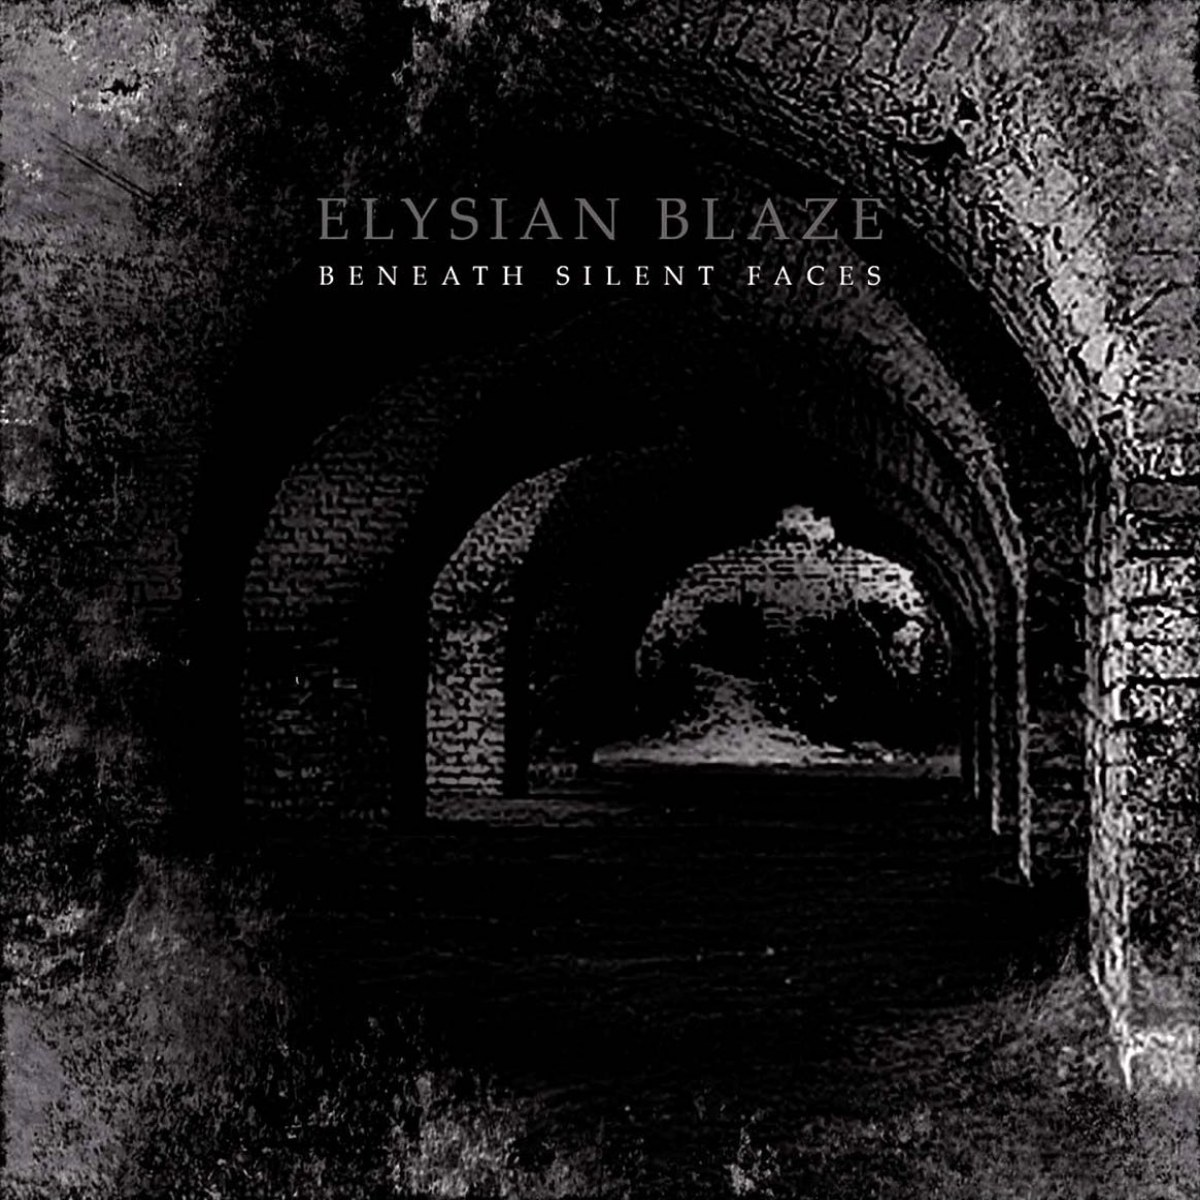 Review for Elysian Blaze - Beneath Silent Faces